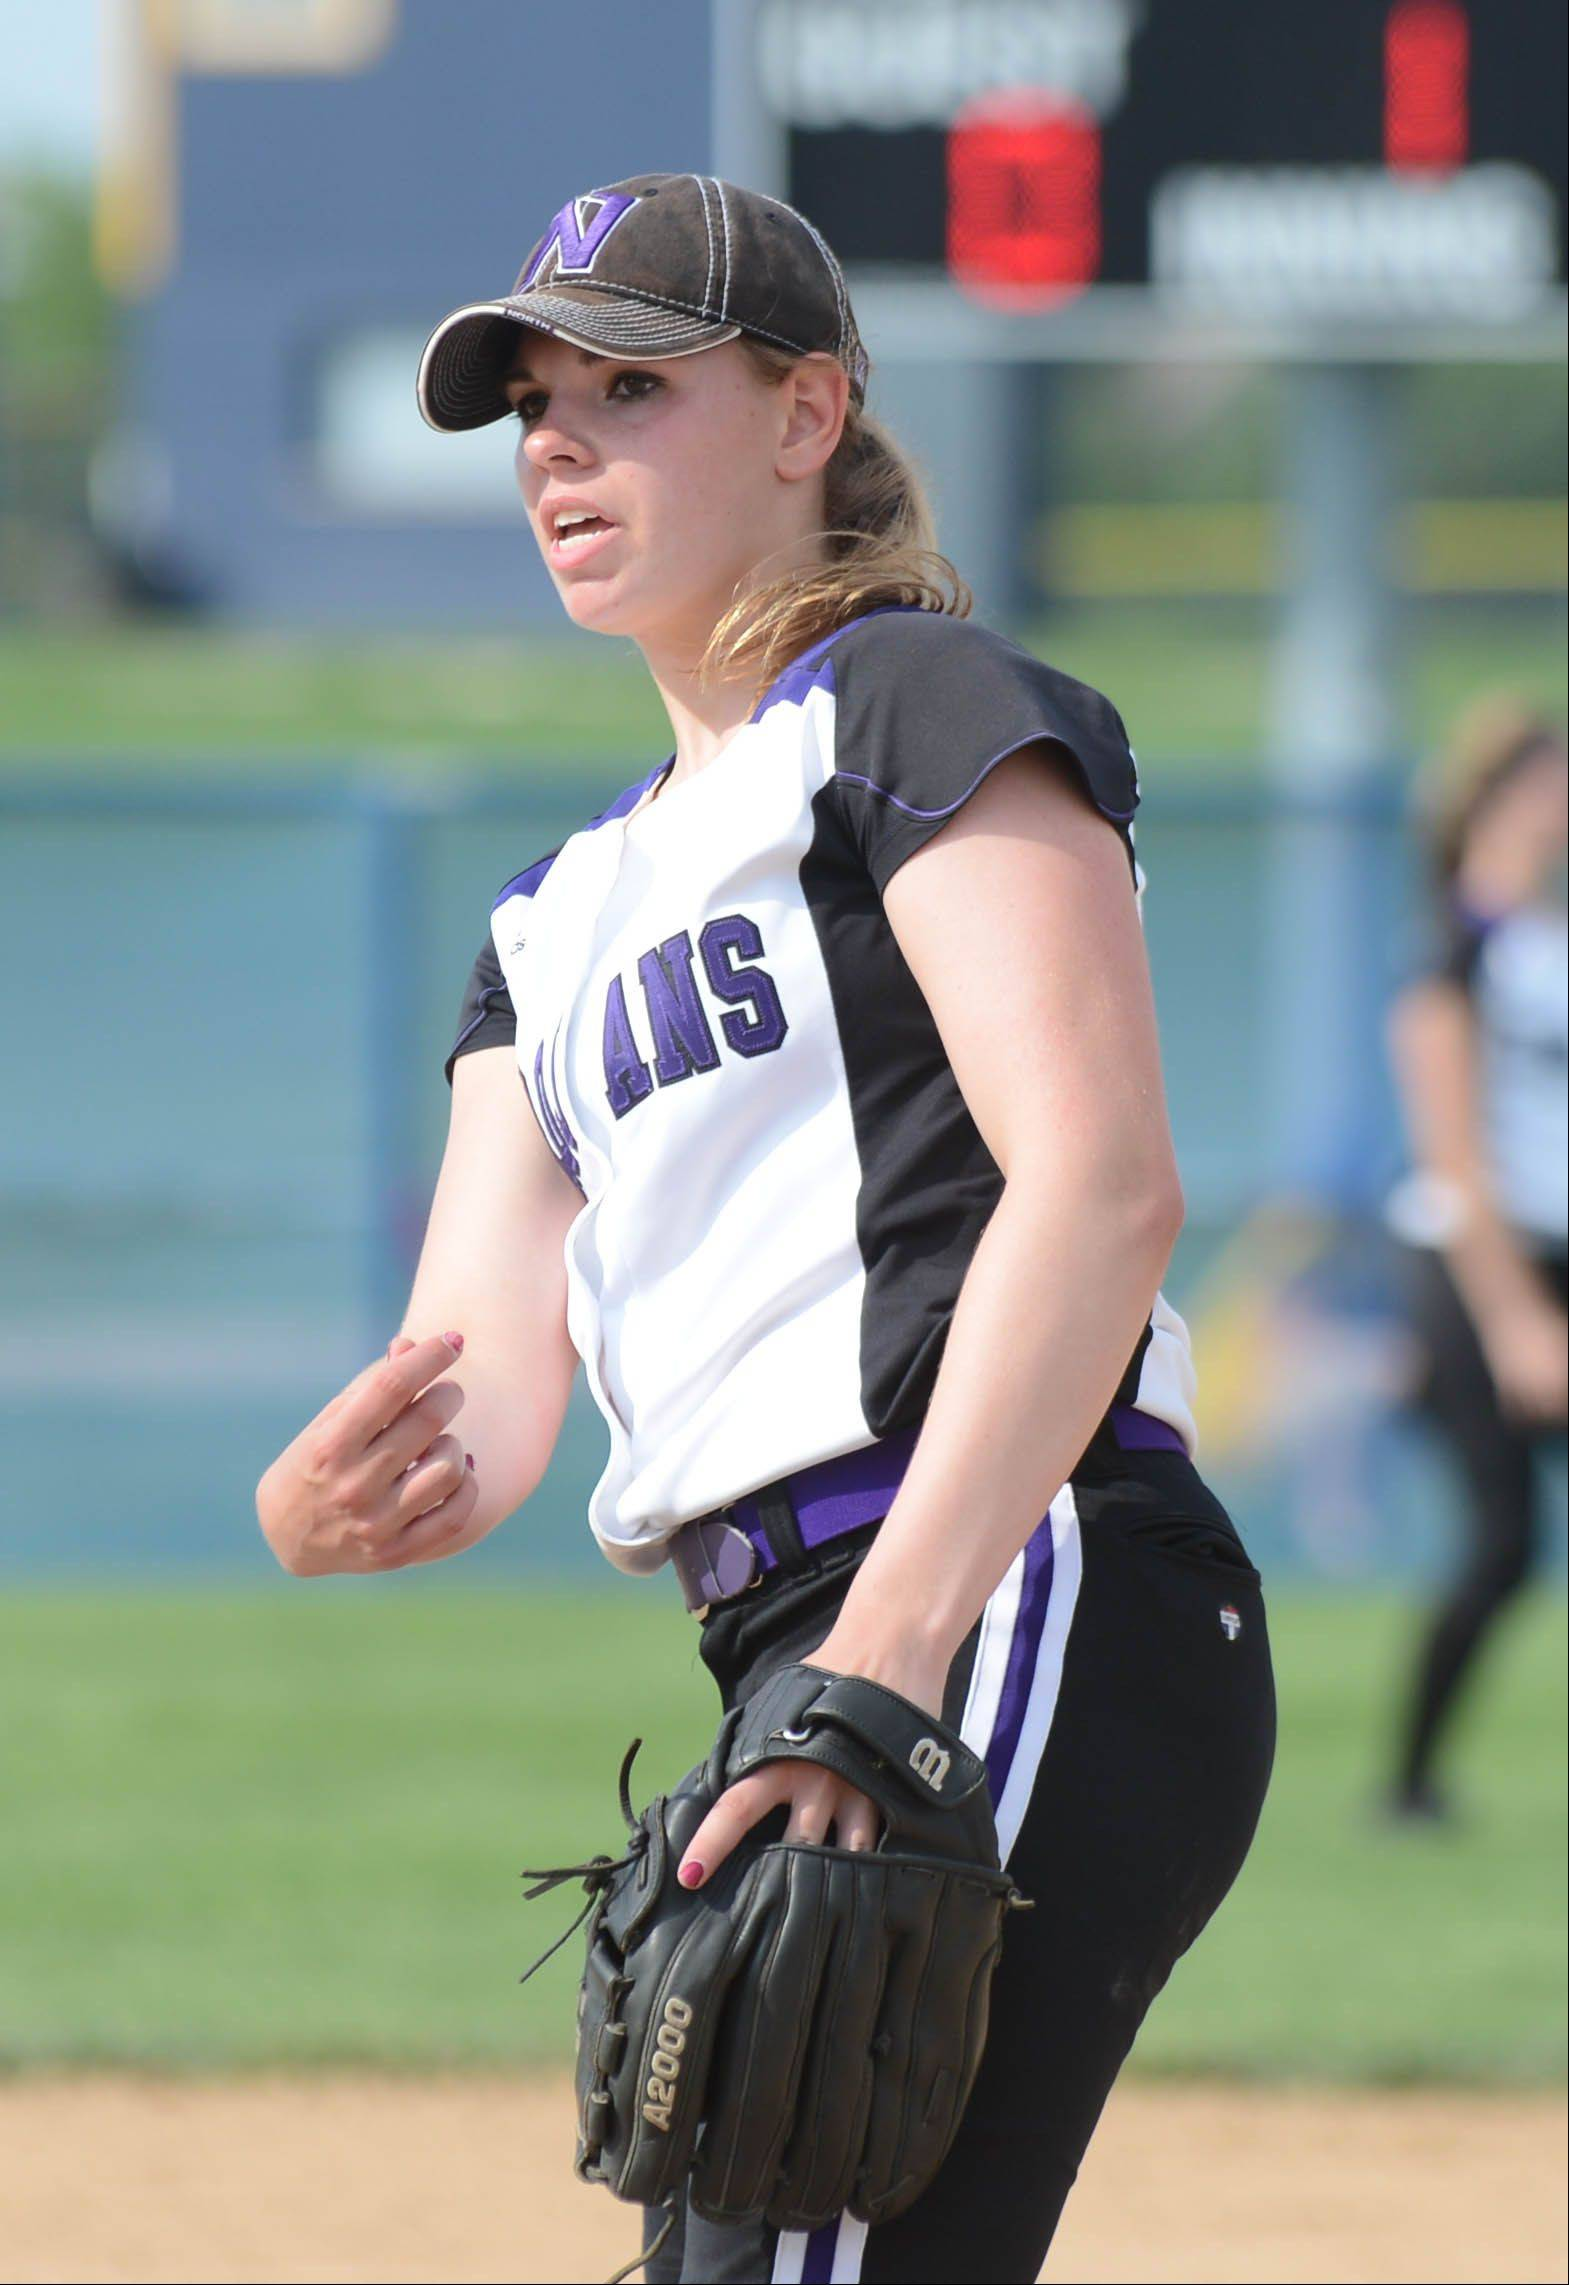 Downers Grove North pitcher Elaine Heflin for possible All-Area caption story